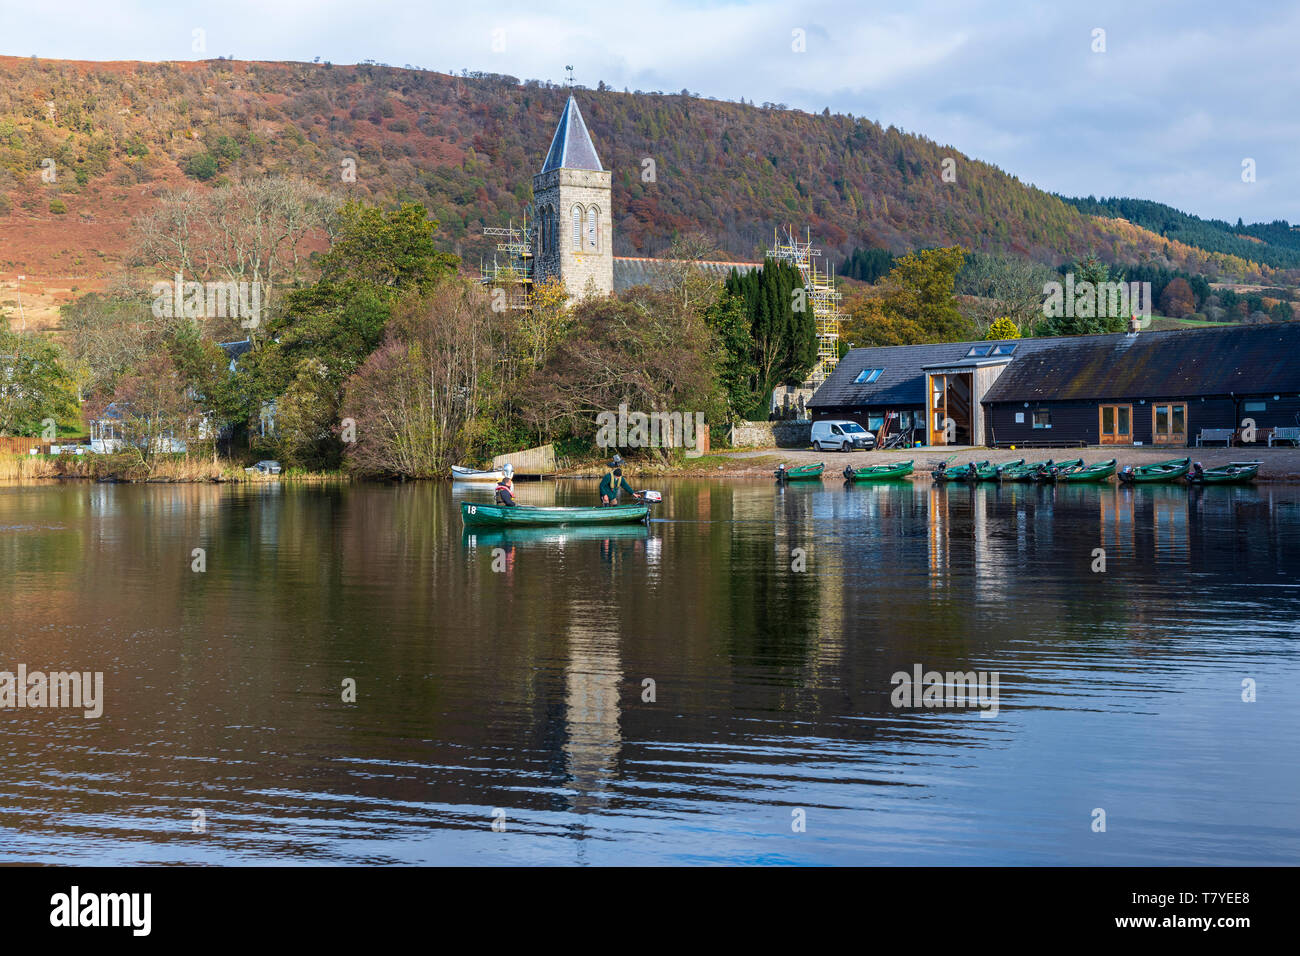 Fishermen setting off from Port of Menteith Fisheries on Lake of Menteith in the Trossachs, Scotland, UK - Stock Image